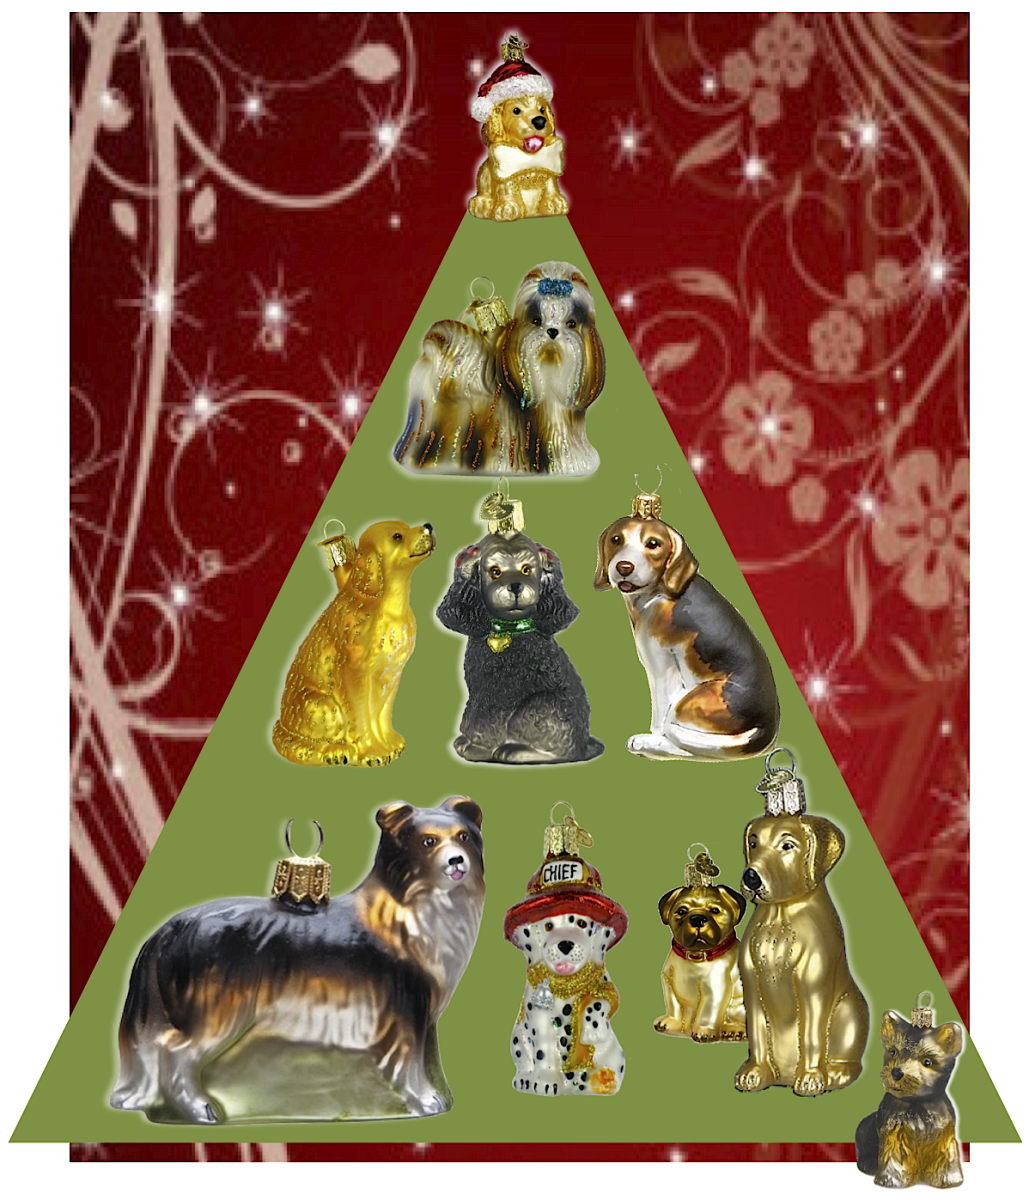 Top to Bottom, left to right, Jolly Pup in Santa Hat, Shih Tzu, Golden Retriever, Poodle, Beagle, Border Collie, Dalmatian, Pug, Yellow Lab,Yorkie. Many more breeds and generic dog ornaments are available, including different colors and poses.